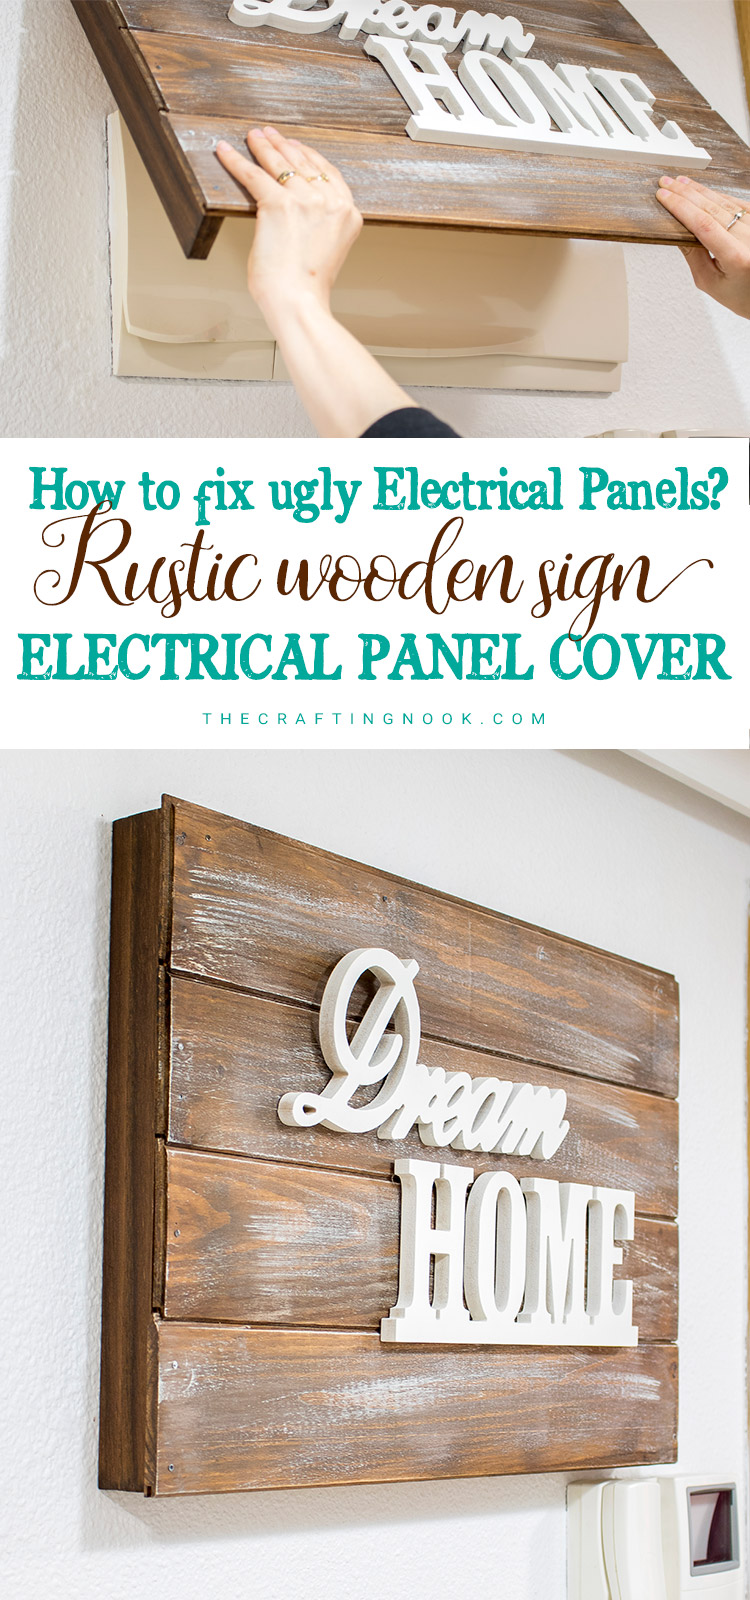 hight resolution of rustic wooden sign electrical panel cover